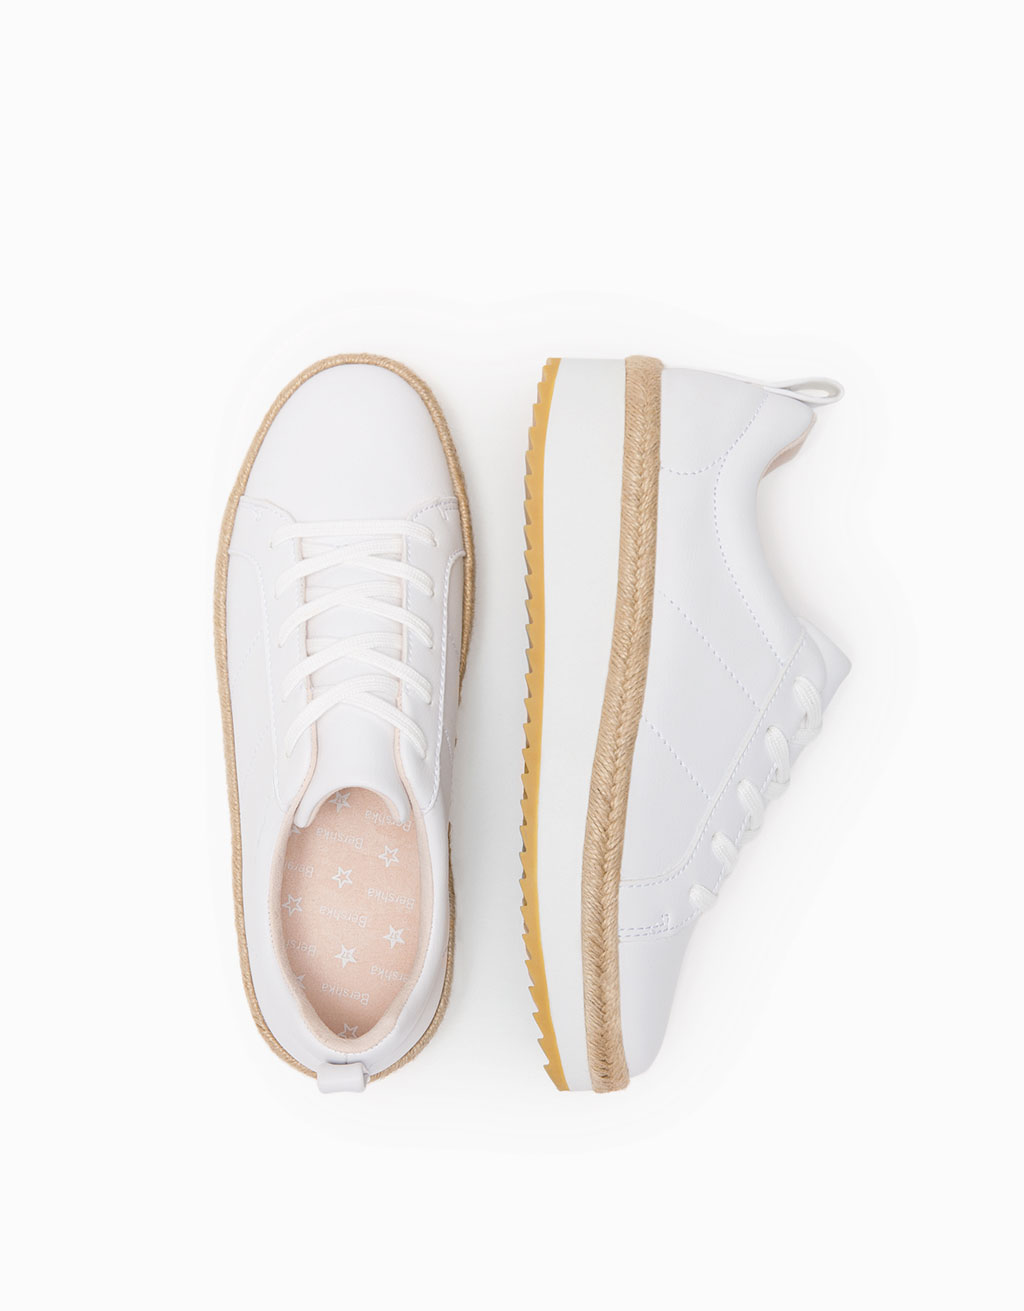 Lace-up jute wedge sneakers